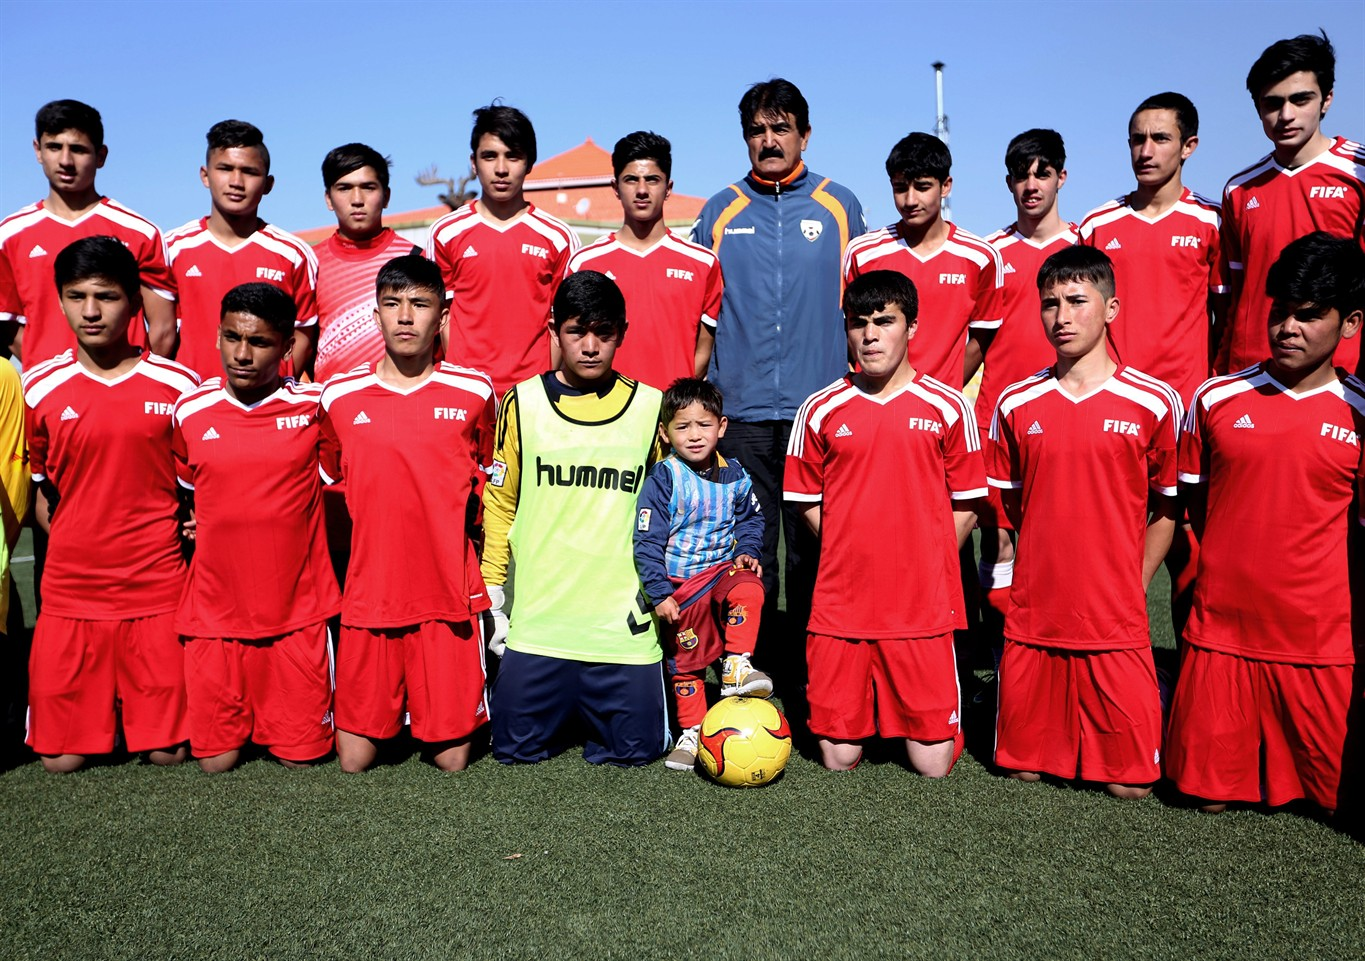 5 year old afghan boy could get to meet lionel messi 680 news martaza ahmadi a five year old afghan lionel messi fan center poses for a photo with a football team at the afghan football federation stadium in kabul m4hsunfo Choice Image